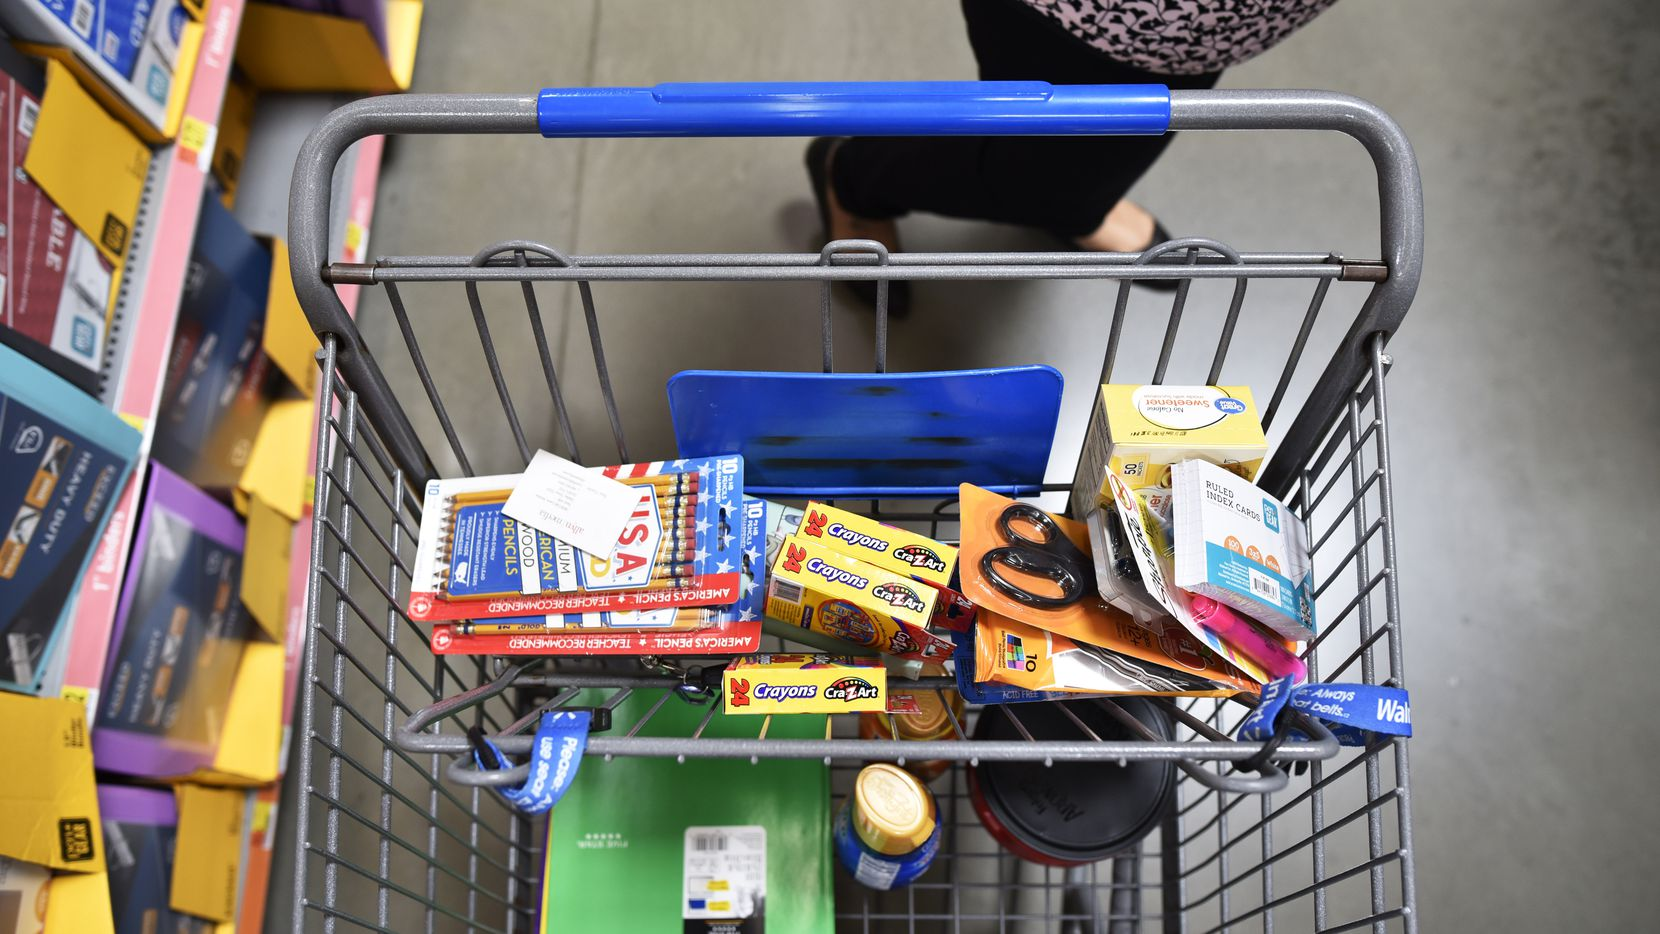 Reyna Jimenez, 30, of Farmers Branch, shopped for school supplies a  Walmart Supercenter off of Lyndon B. Johnson Freeway in North Dallas in 2019. The supplies were to be donated to a raffle at her job.